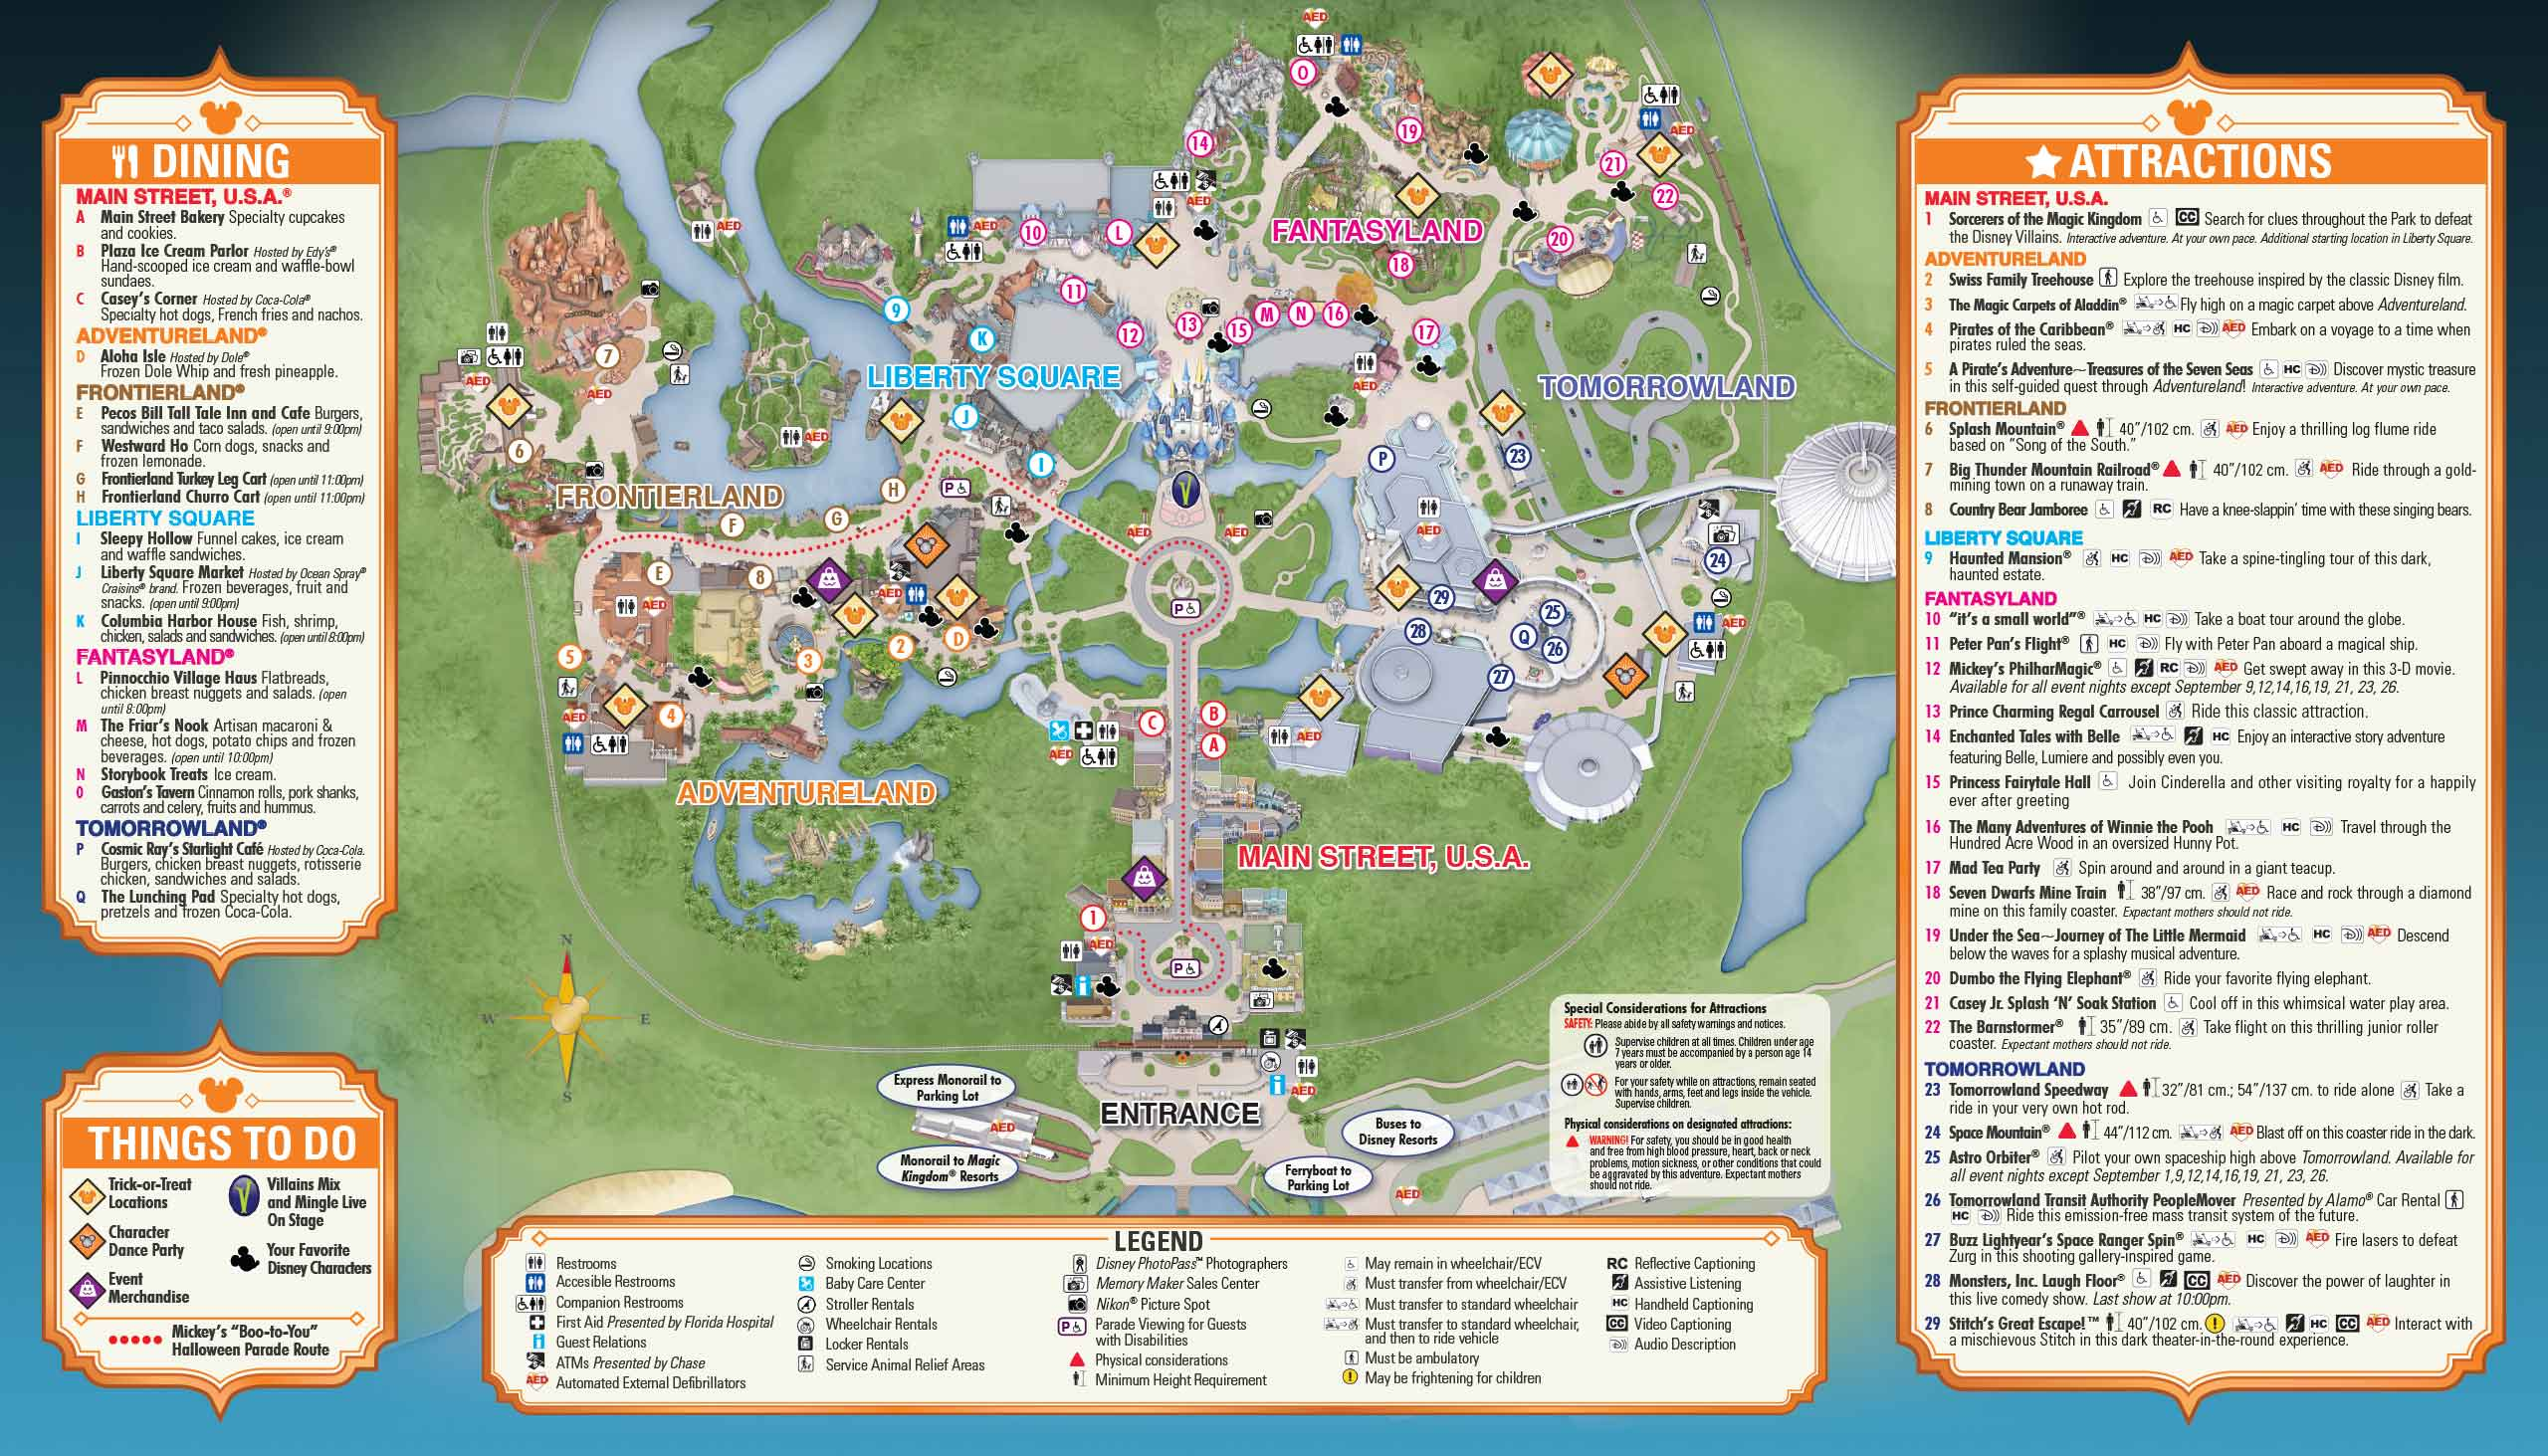 Mickey's Not-So-Scary Halloween Party guide map 2014 - Photo 2 of 2